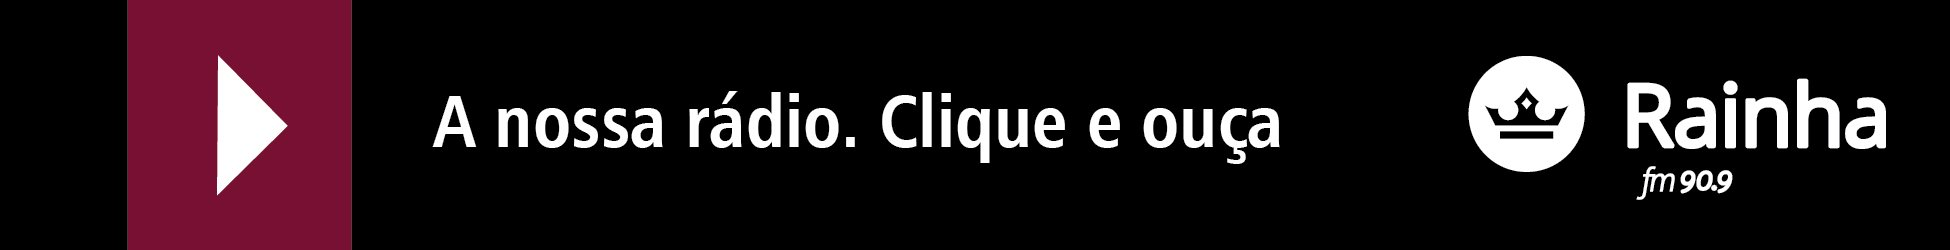 A nossa rádio. Clique e ouça.